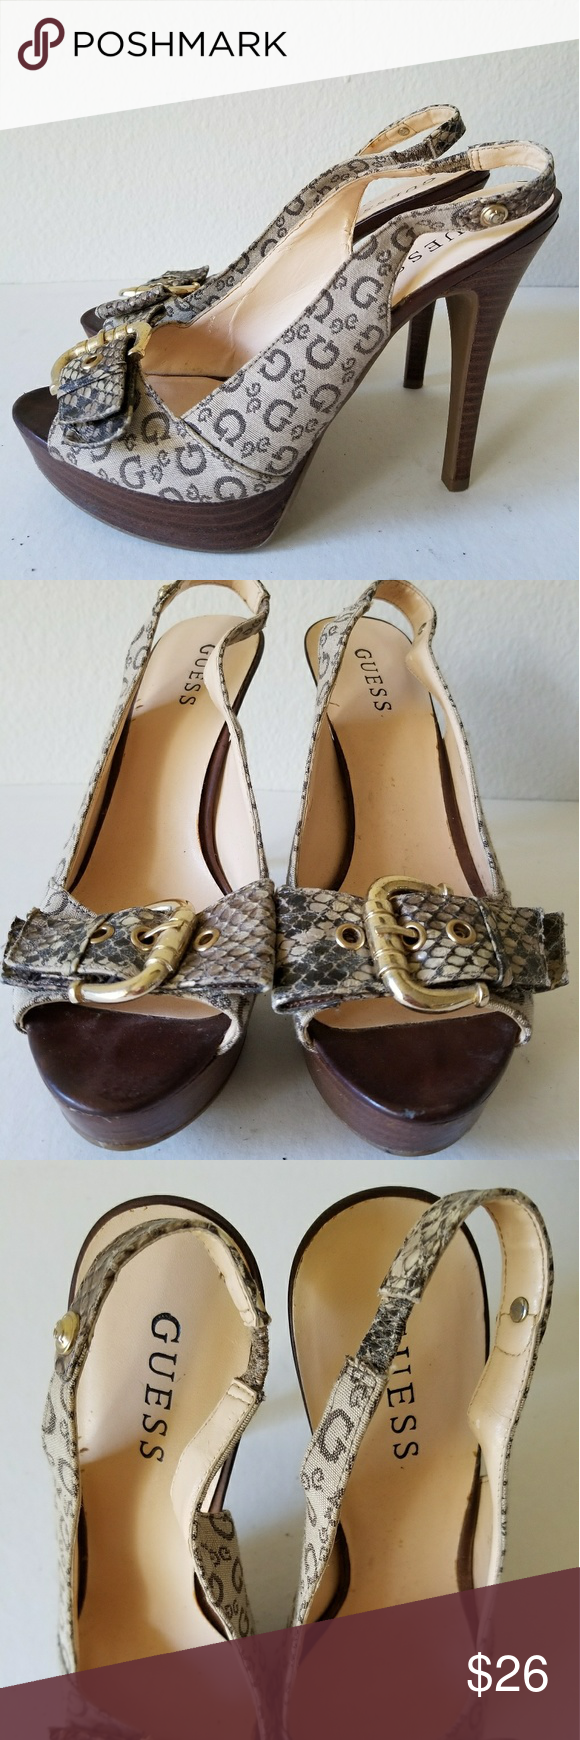 9eb4f0376 Spotted while shopping on Poshmark  Guess Womens High Hills Shoes SZ 8!   poshmark  fashion  shopping  style  Guess  Shoes